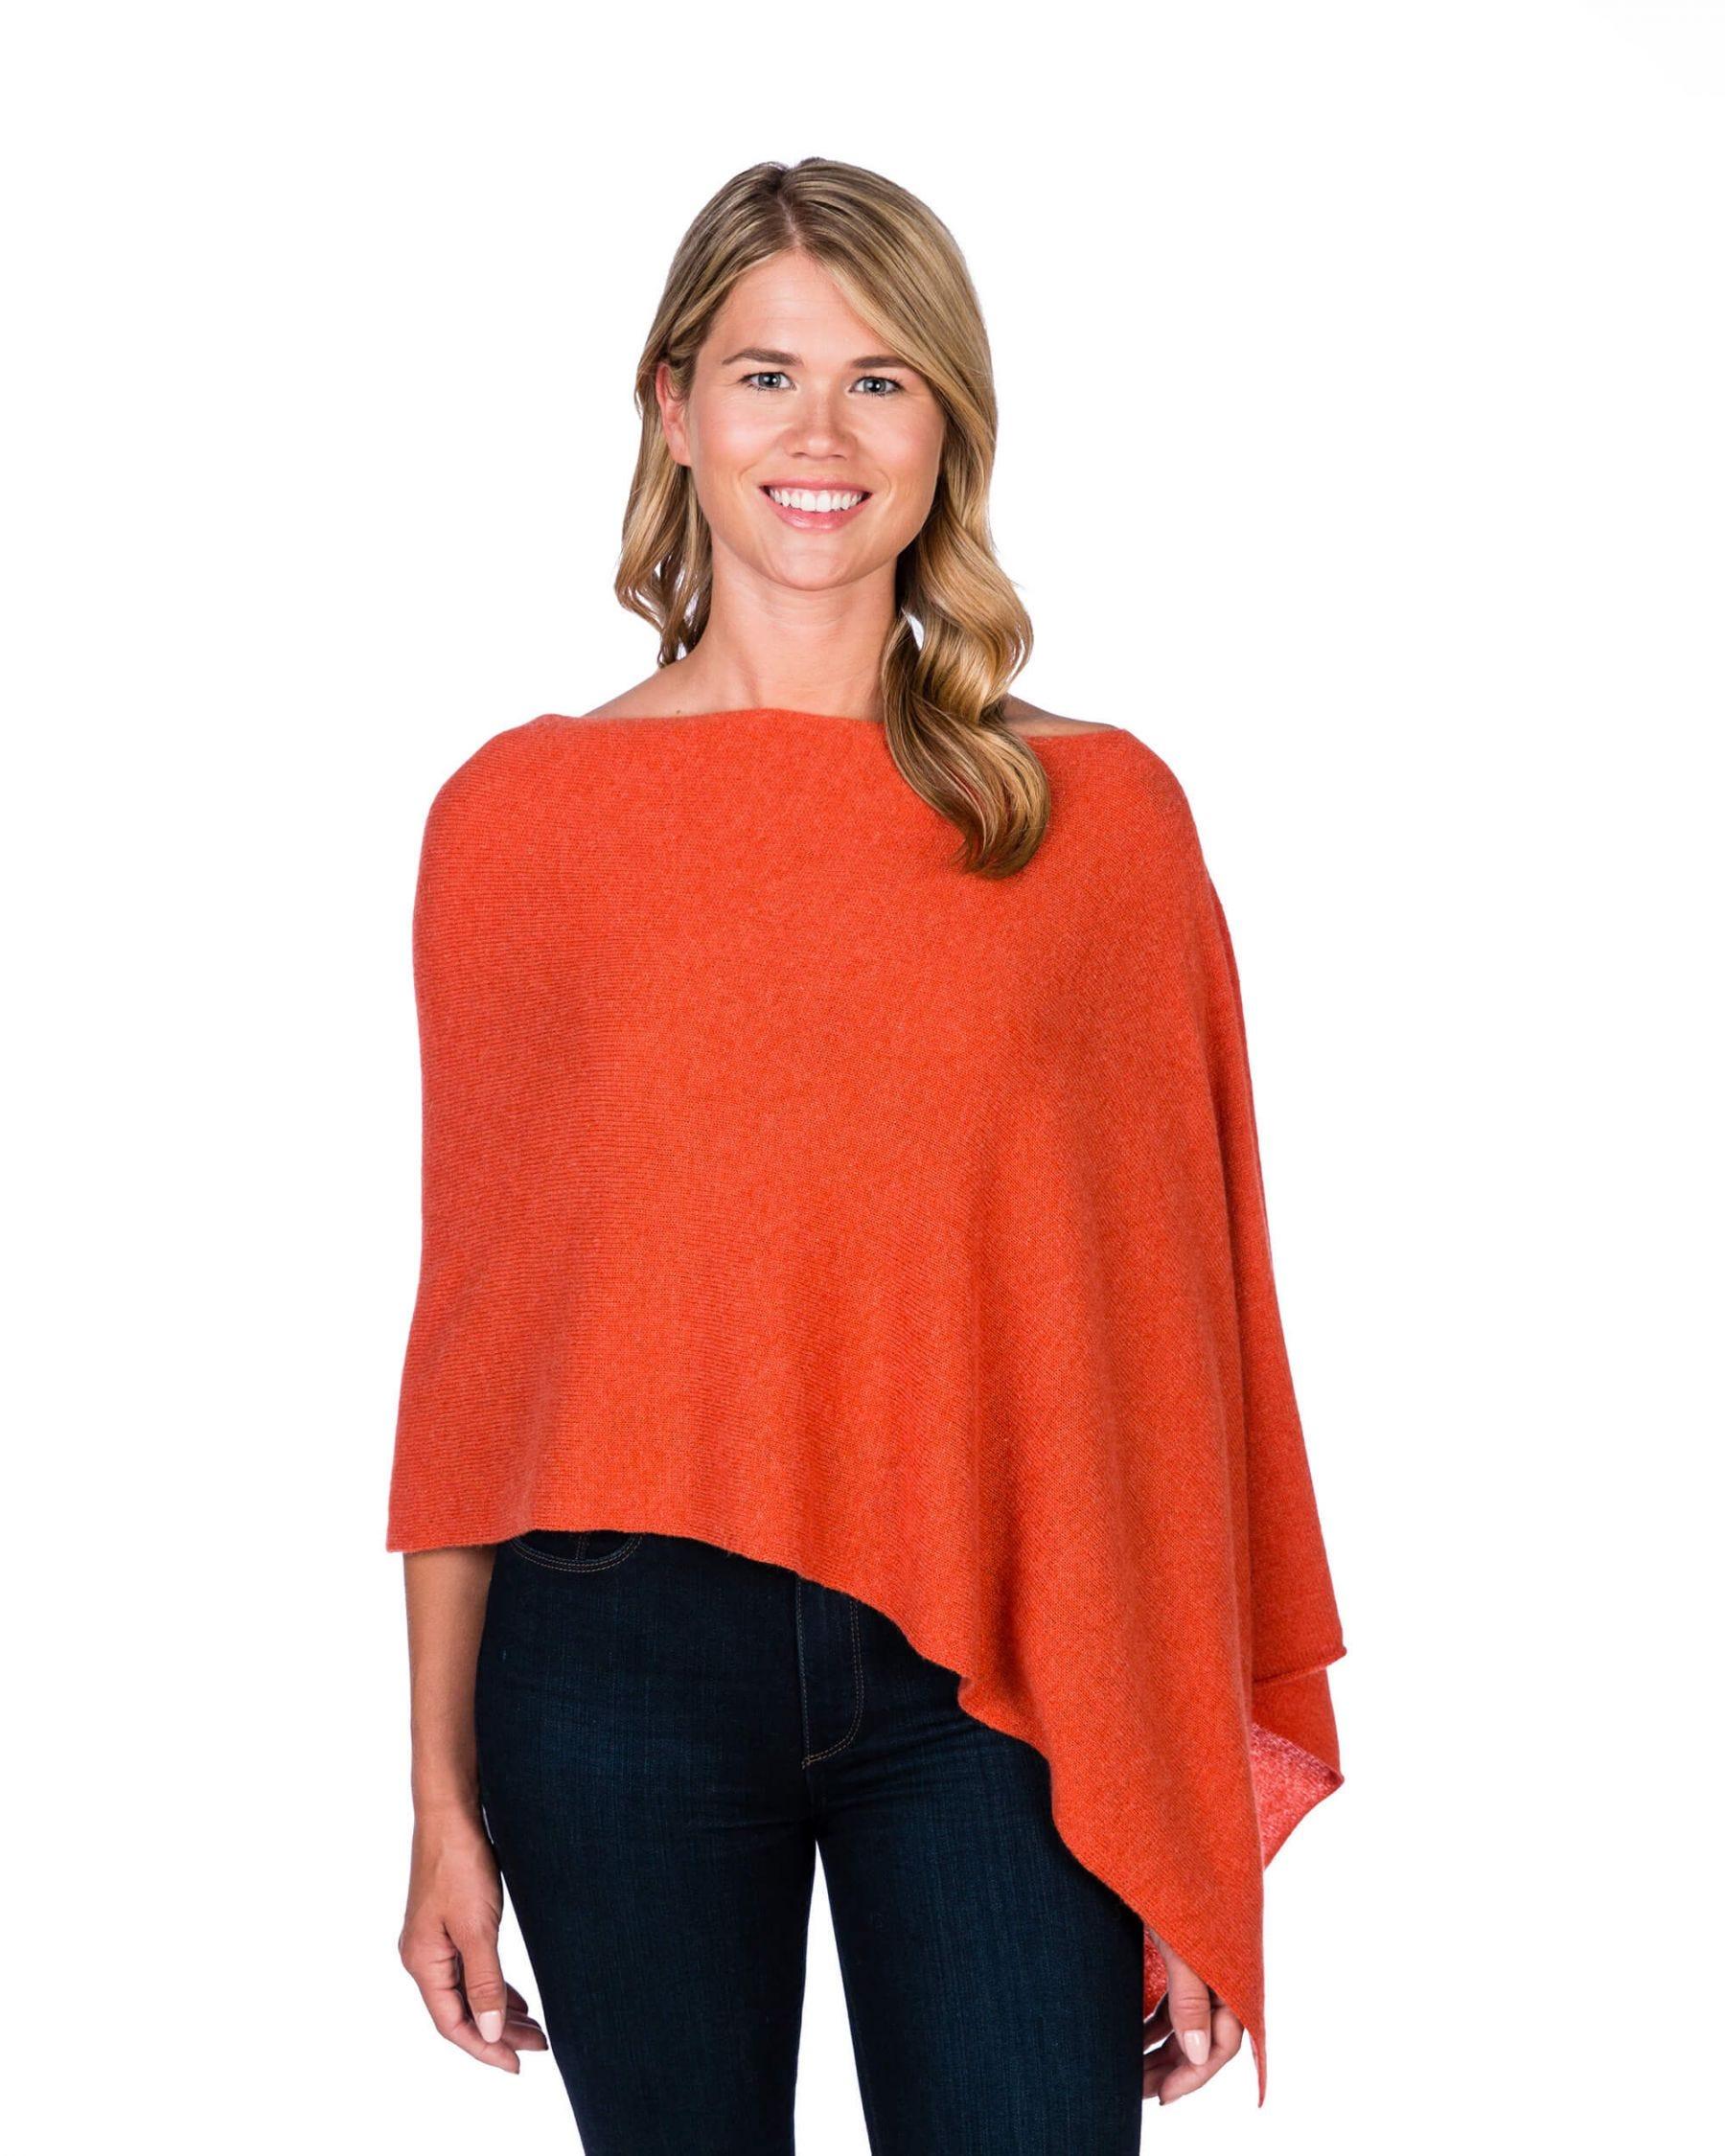 Cashmere Dress Topper/Poncho in Autumn